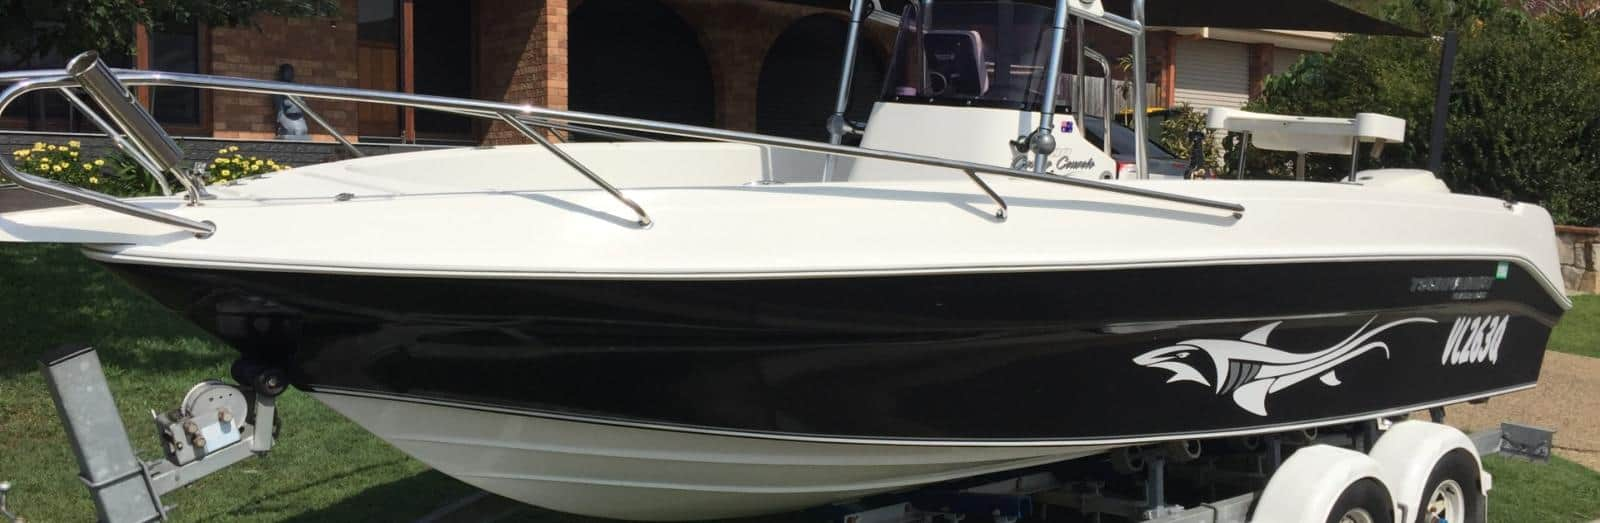 The Boat Care Company are Boat Detailers and Cleaners based in Manly servicing the Gold Coast, Brisbane, Sunshine Coast and Toowoomba